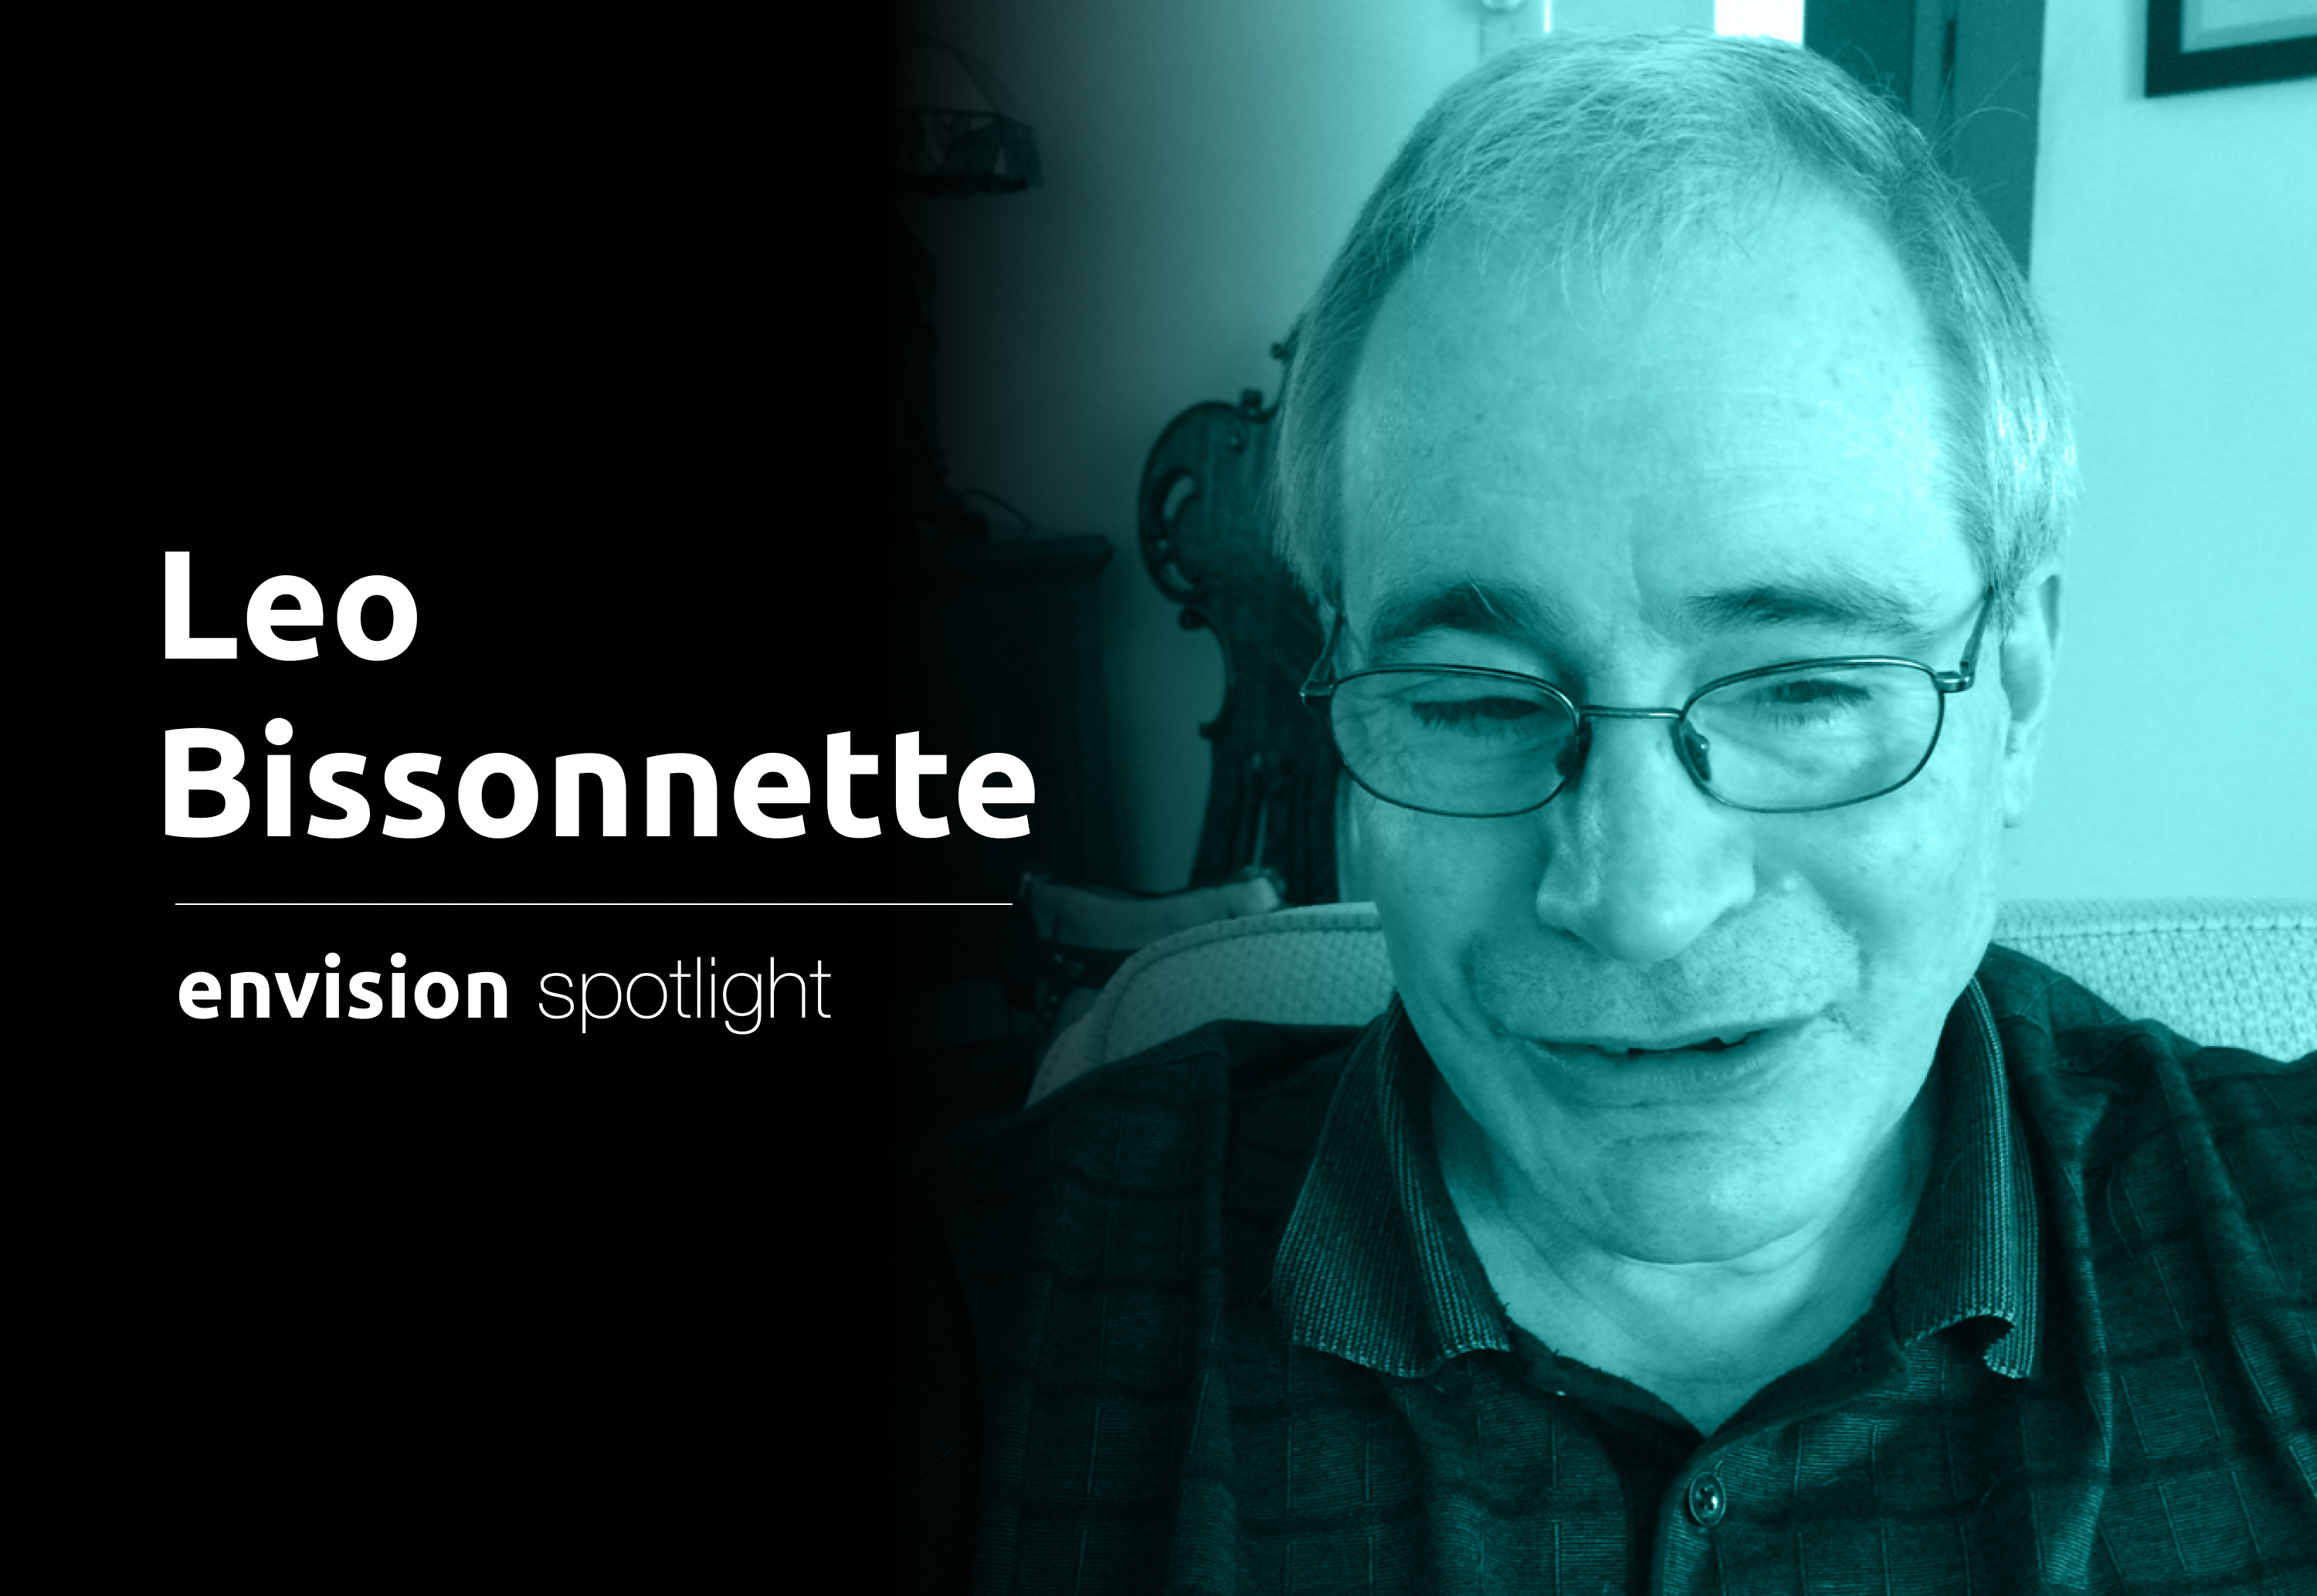 A photo of Leo Bissonnette